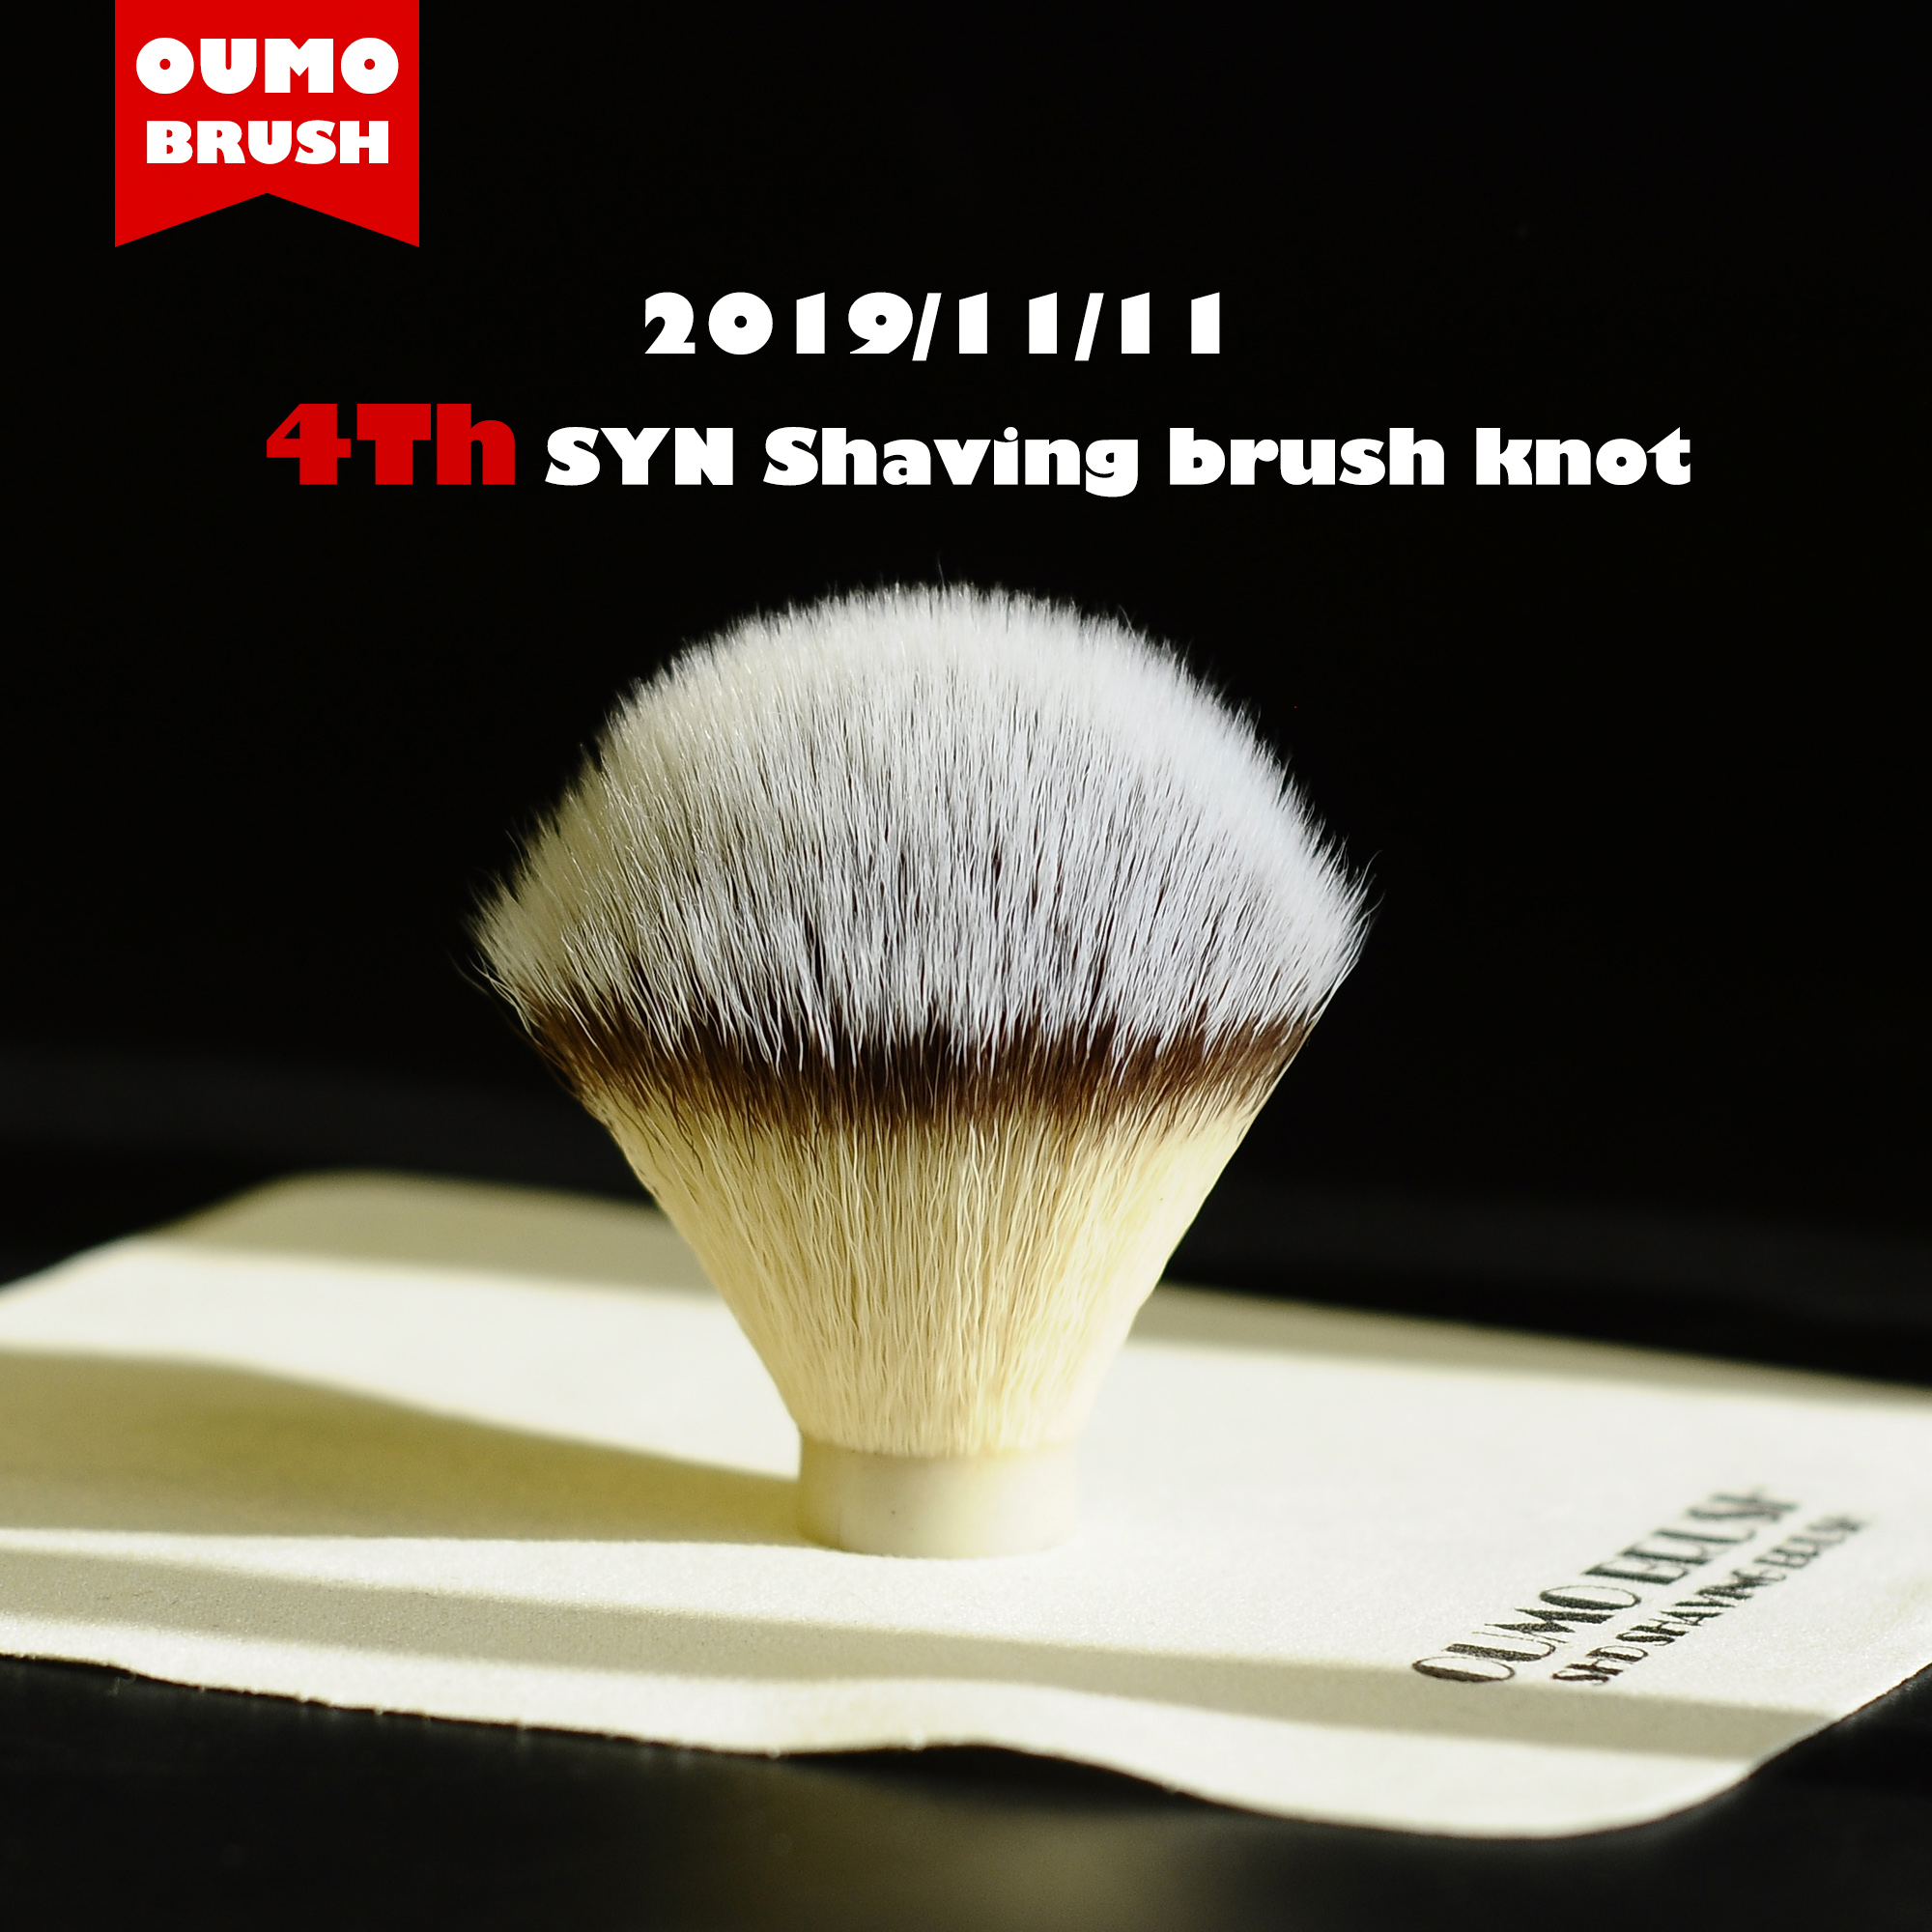 OUMO- Presale The 4th Synthetic Hair Shaving Brush Knots